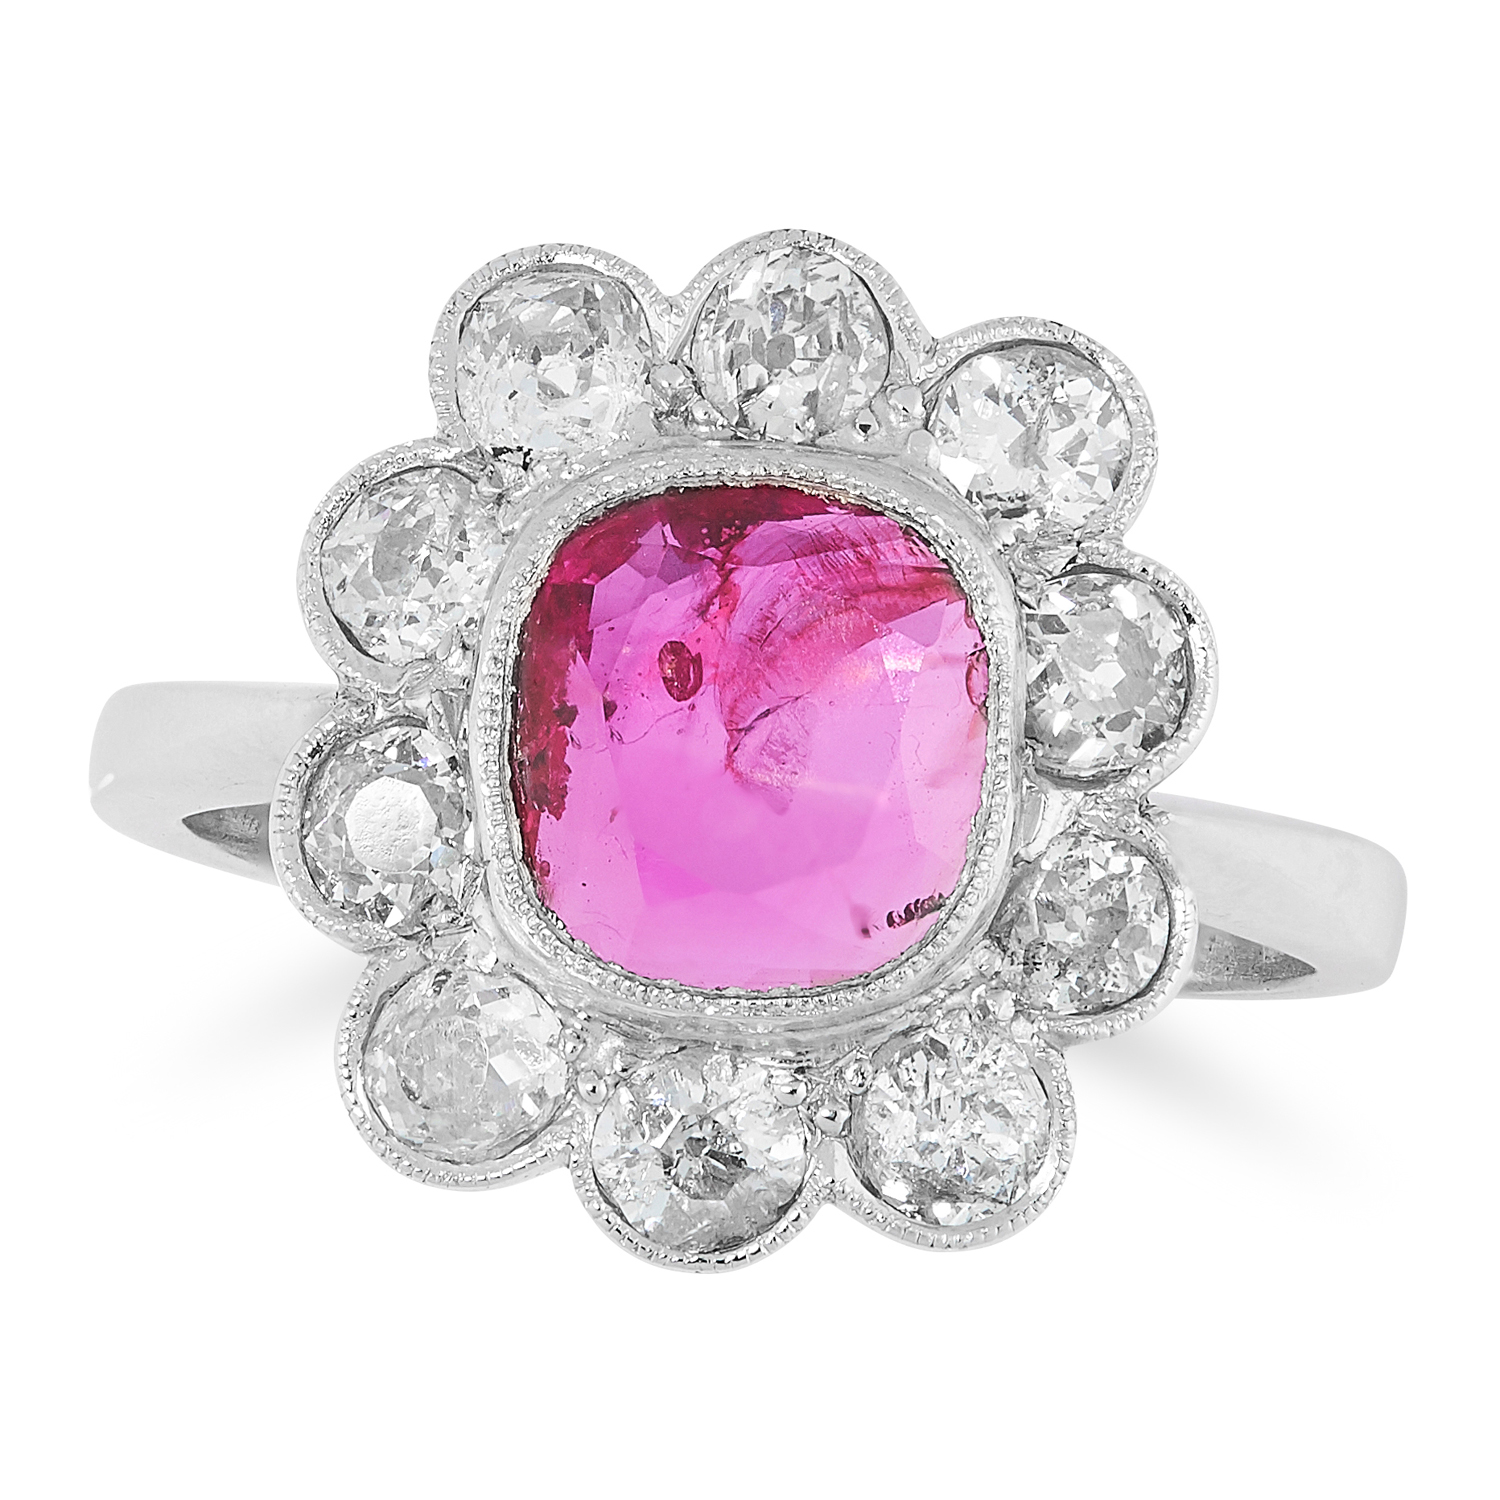 A BURMA NO HEAT RUBY AND DIAMOND RING CIRCA 1950 in platinum, set with a modified cushion cut ruby